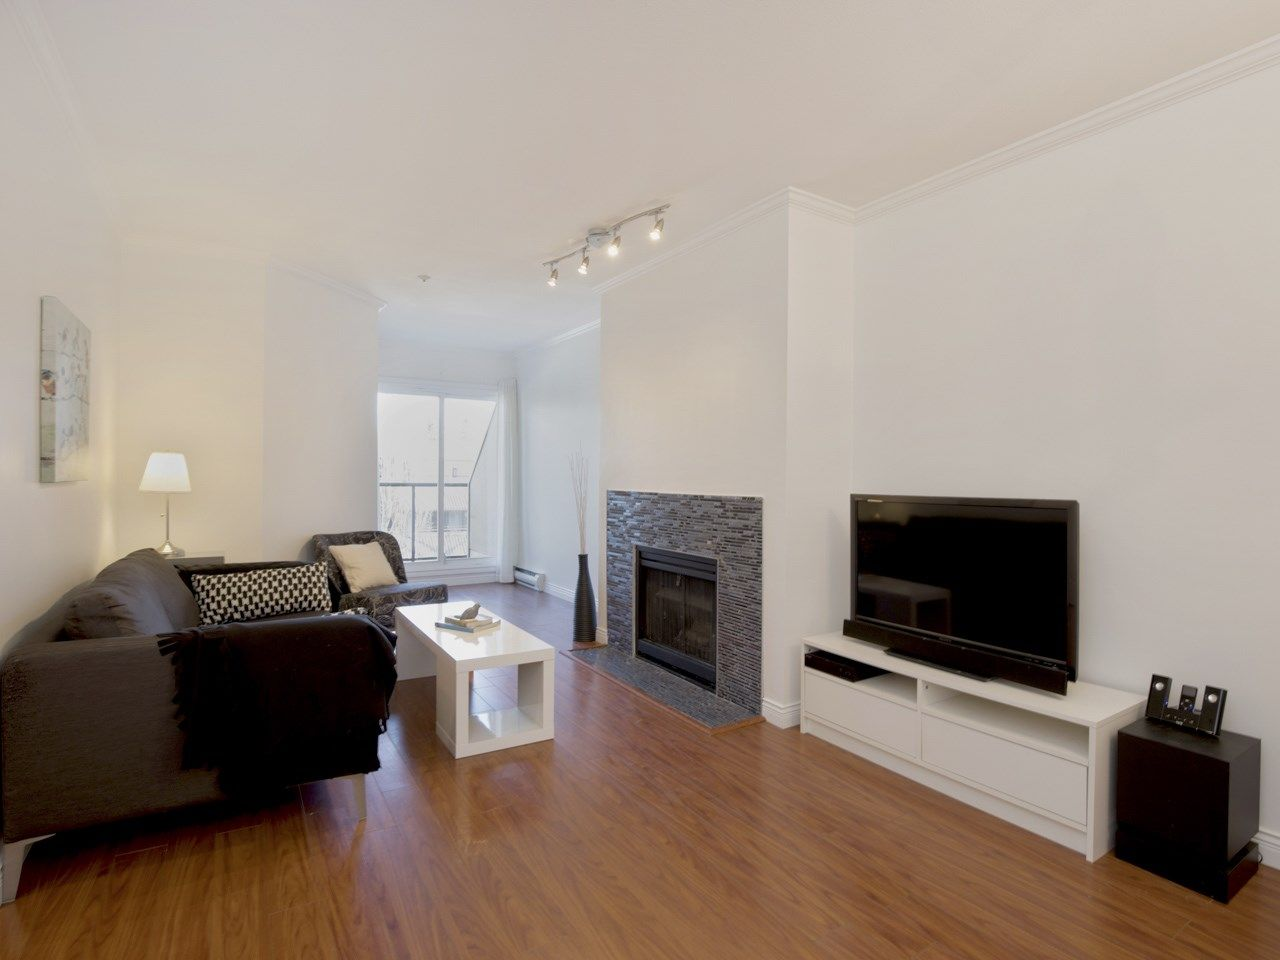 """Main Photo: 307 3638 W BROADWAY Street in Vancouver: Kitsilano Condo for sale in """"CORAL COURT"""" (Vancouver West)  : MLS®# R2354211"""